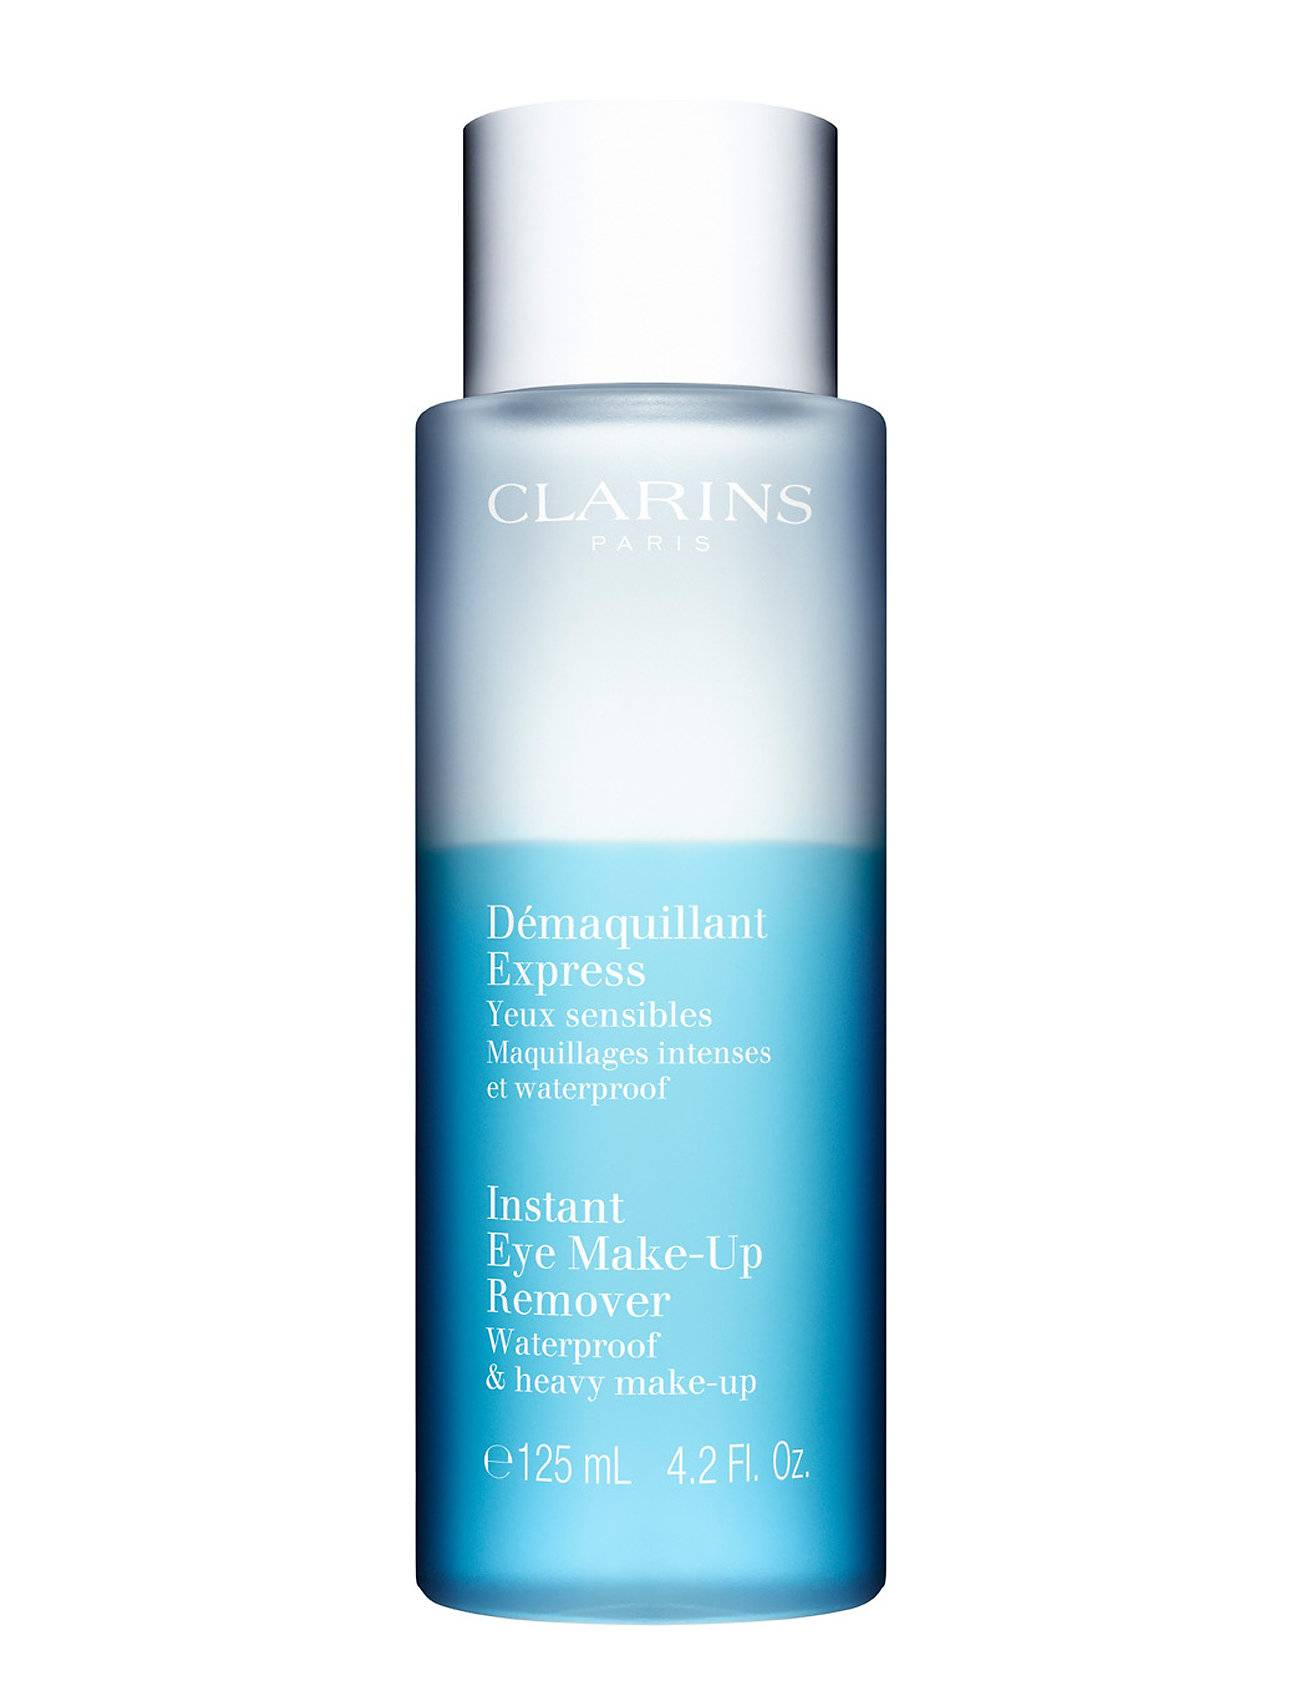 Clarins Makeup Remover Instant Eyemakeup Remover